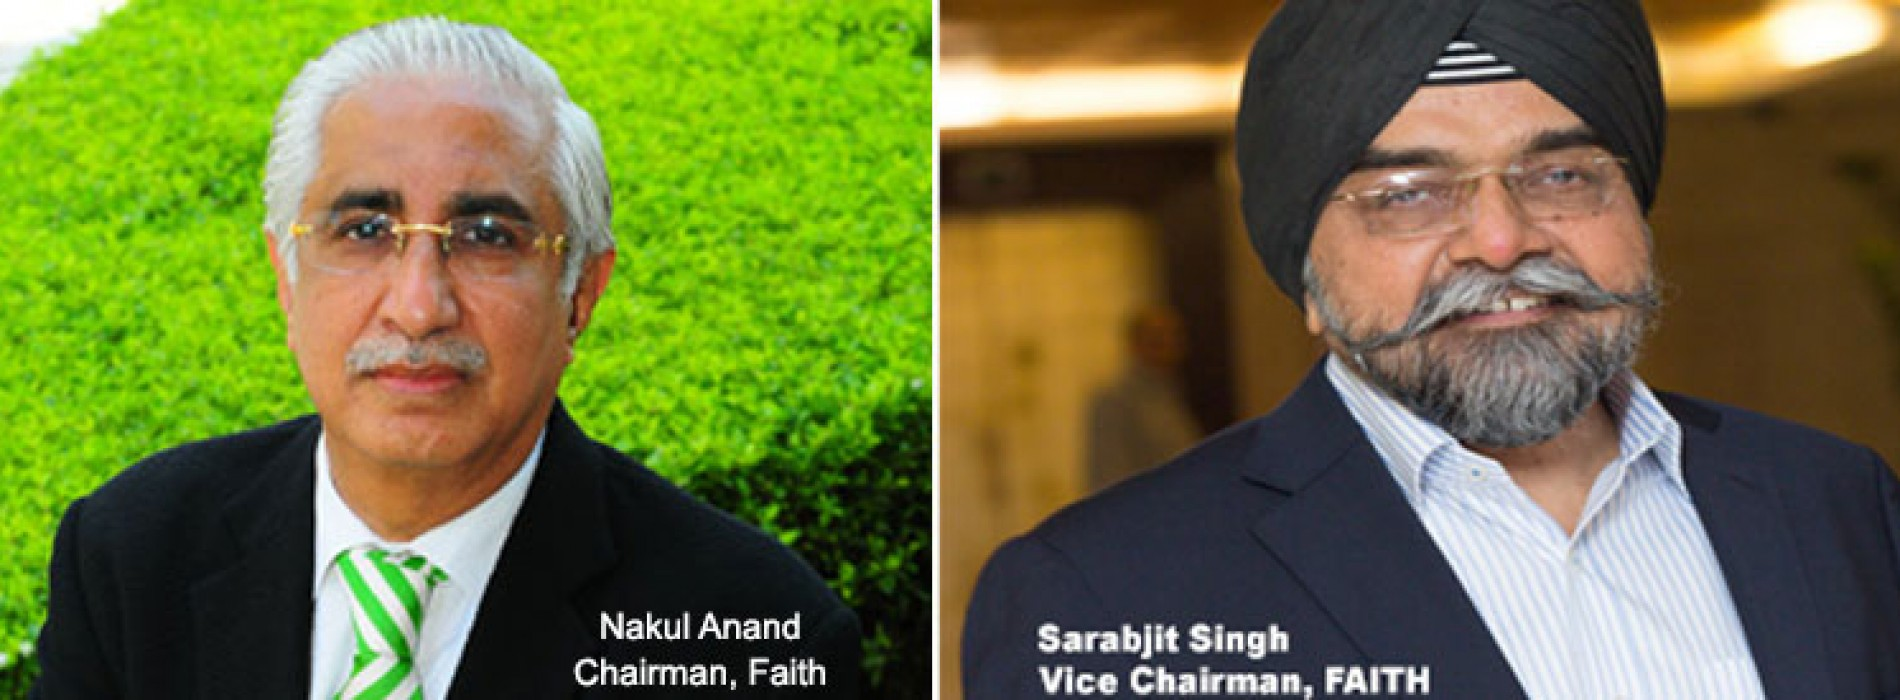 Anand, Singh, re-elected as FAITH Chairman and Vice Chairman